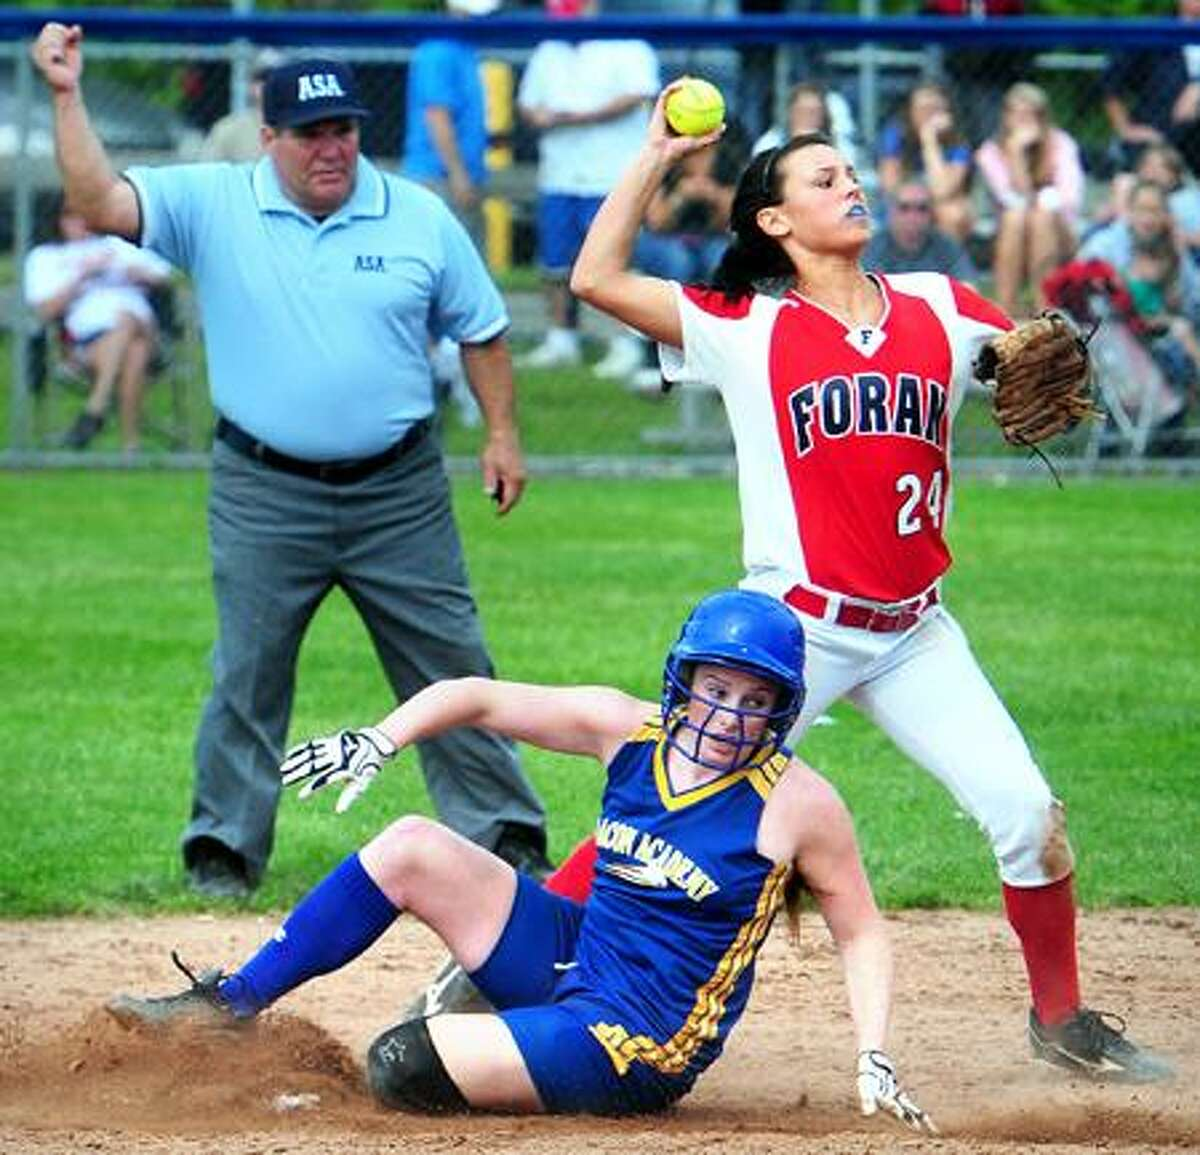 Kelsey McCarthy (bottom) of Bacon Academy is forced out at second base as Brooke Phelan (right) of Foran throws to complete the double play to win the Class L State Softball final at West Haven High School on 6/13/2011.Photo by Arnold Gold/New Haven Register AG0414D